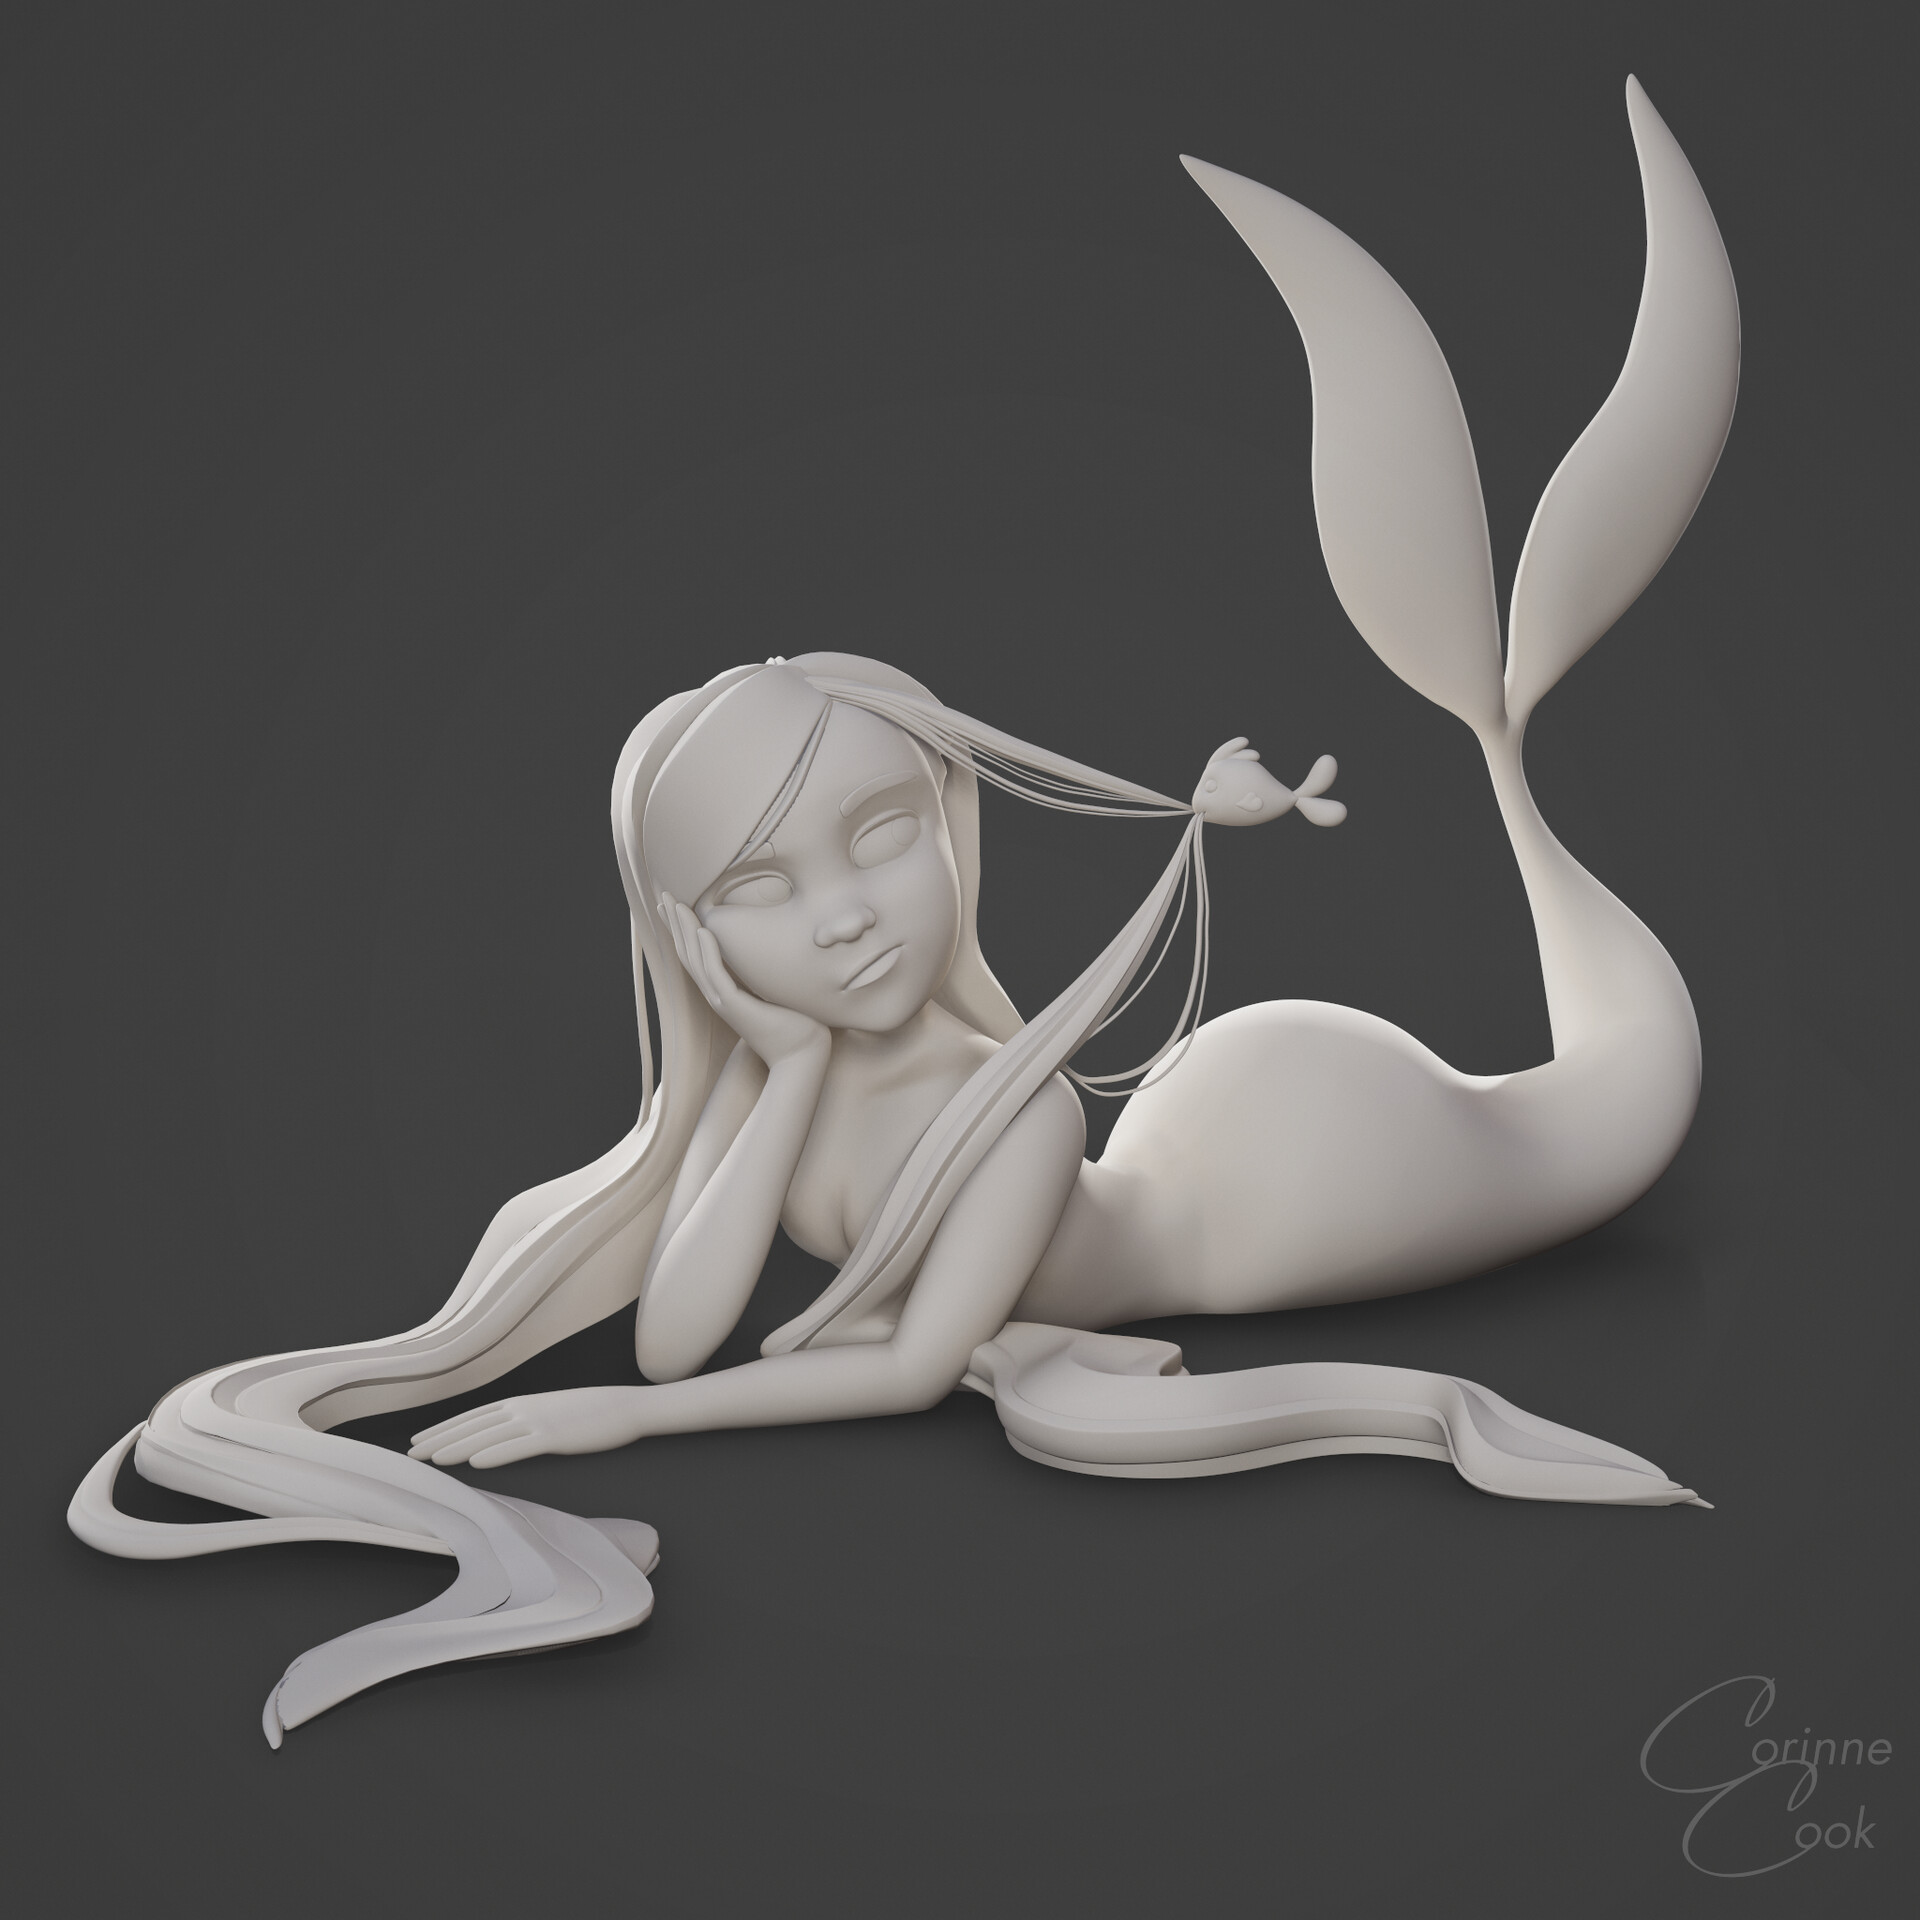 Corinne cook mermay clay